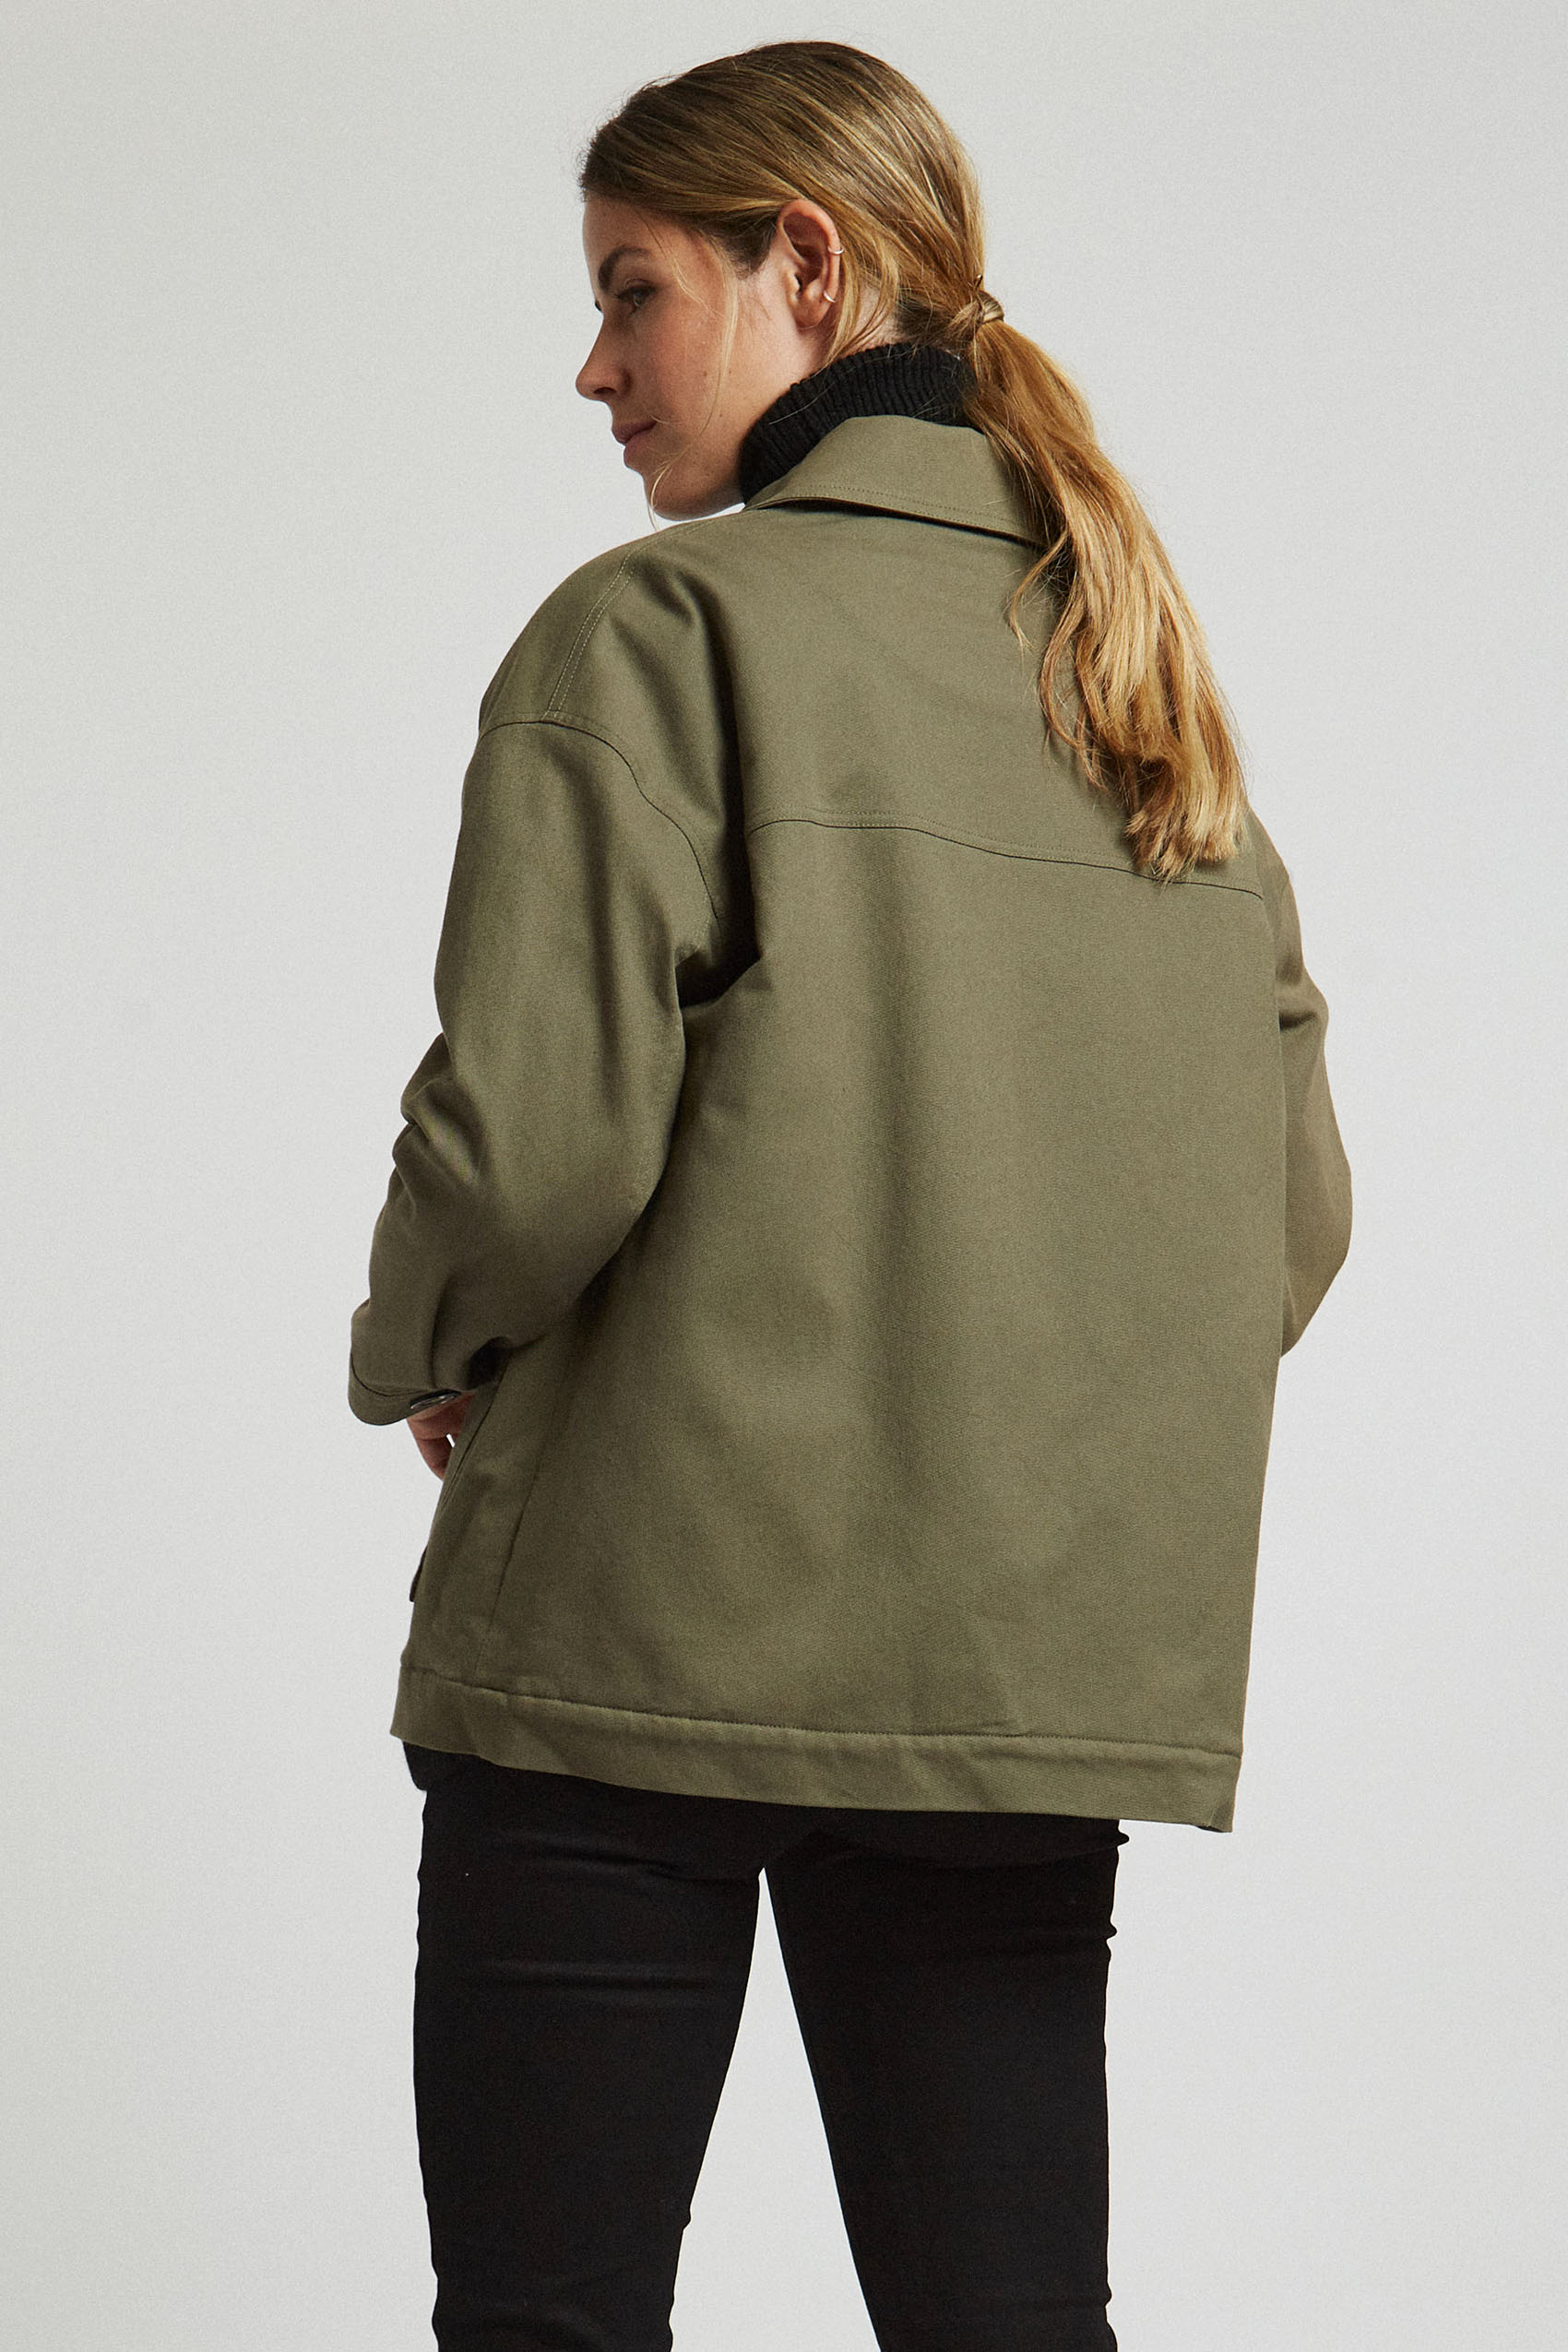 awada_chaqueta-army_47-06-2021__picture-20497